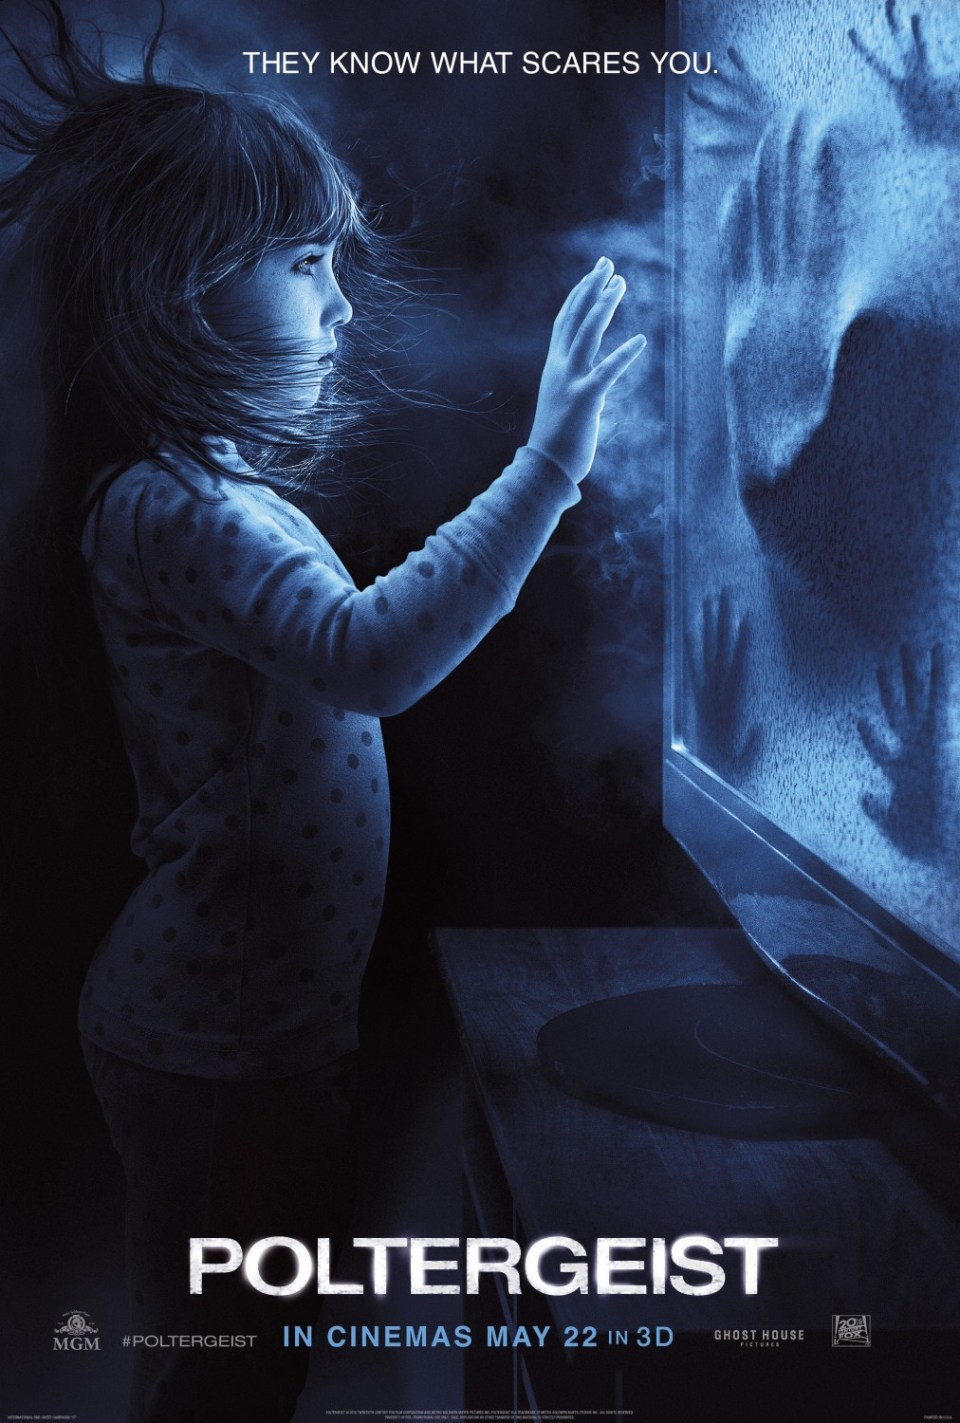 Historical Origins of the Poltergeist - Dread Central